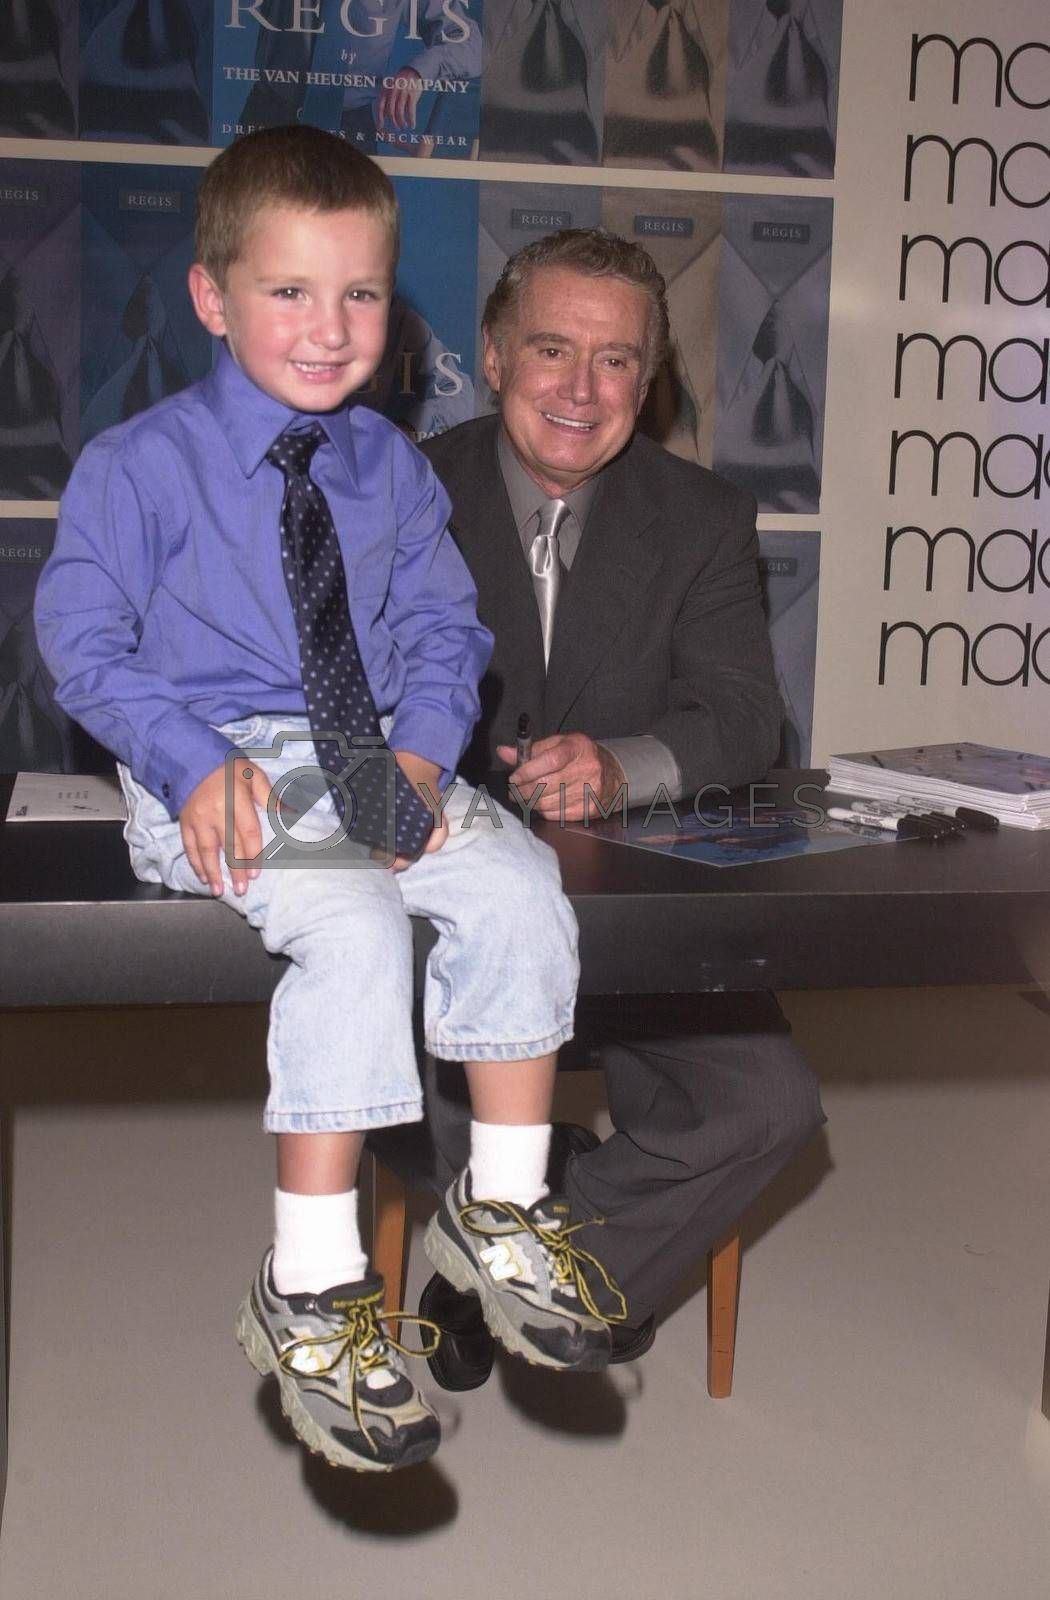 Regis Philbin and Young Fan at Robinson's-May in Beverly Hills to promote new clothes line. 08-23-00